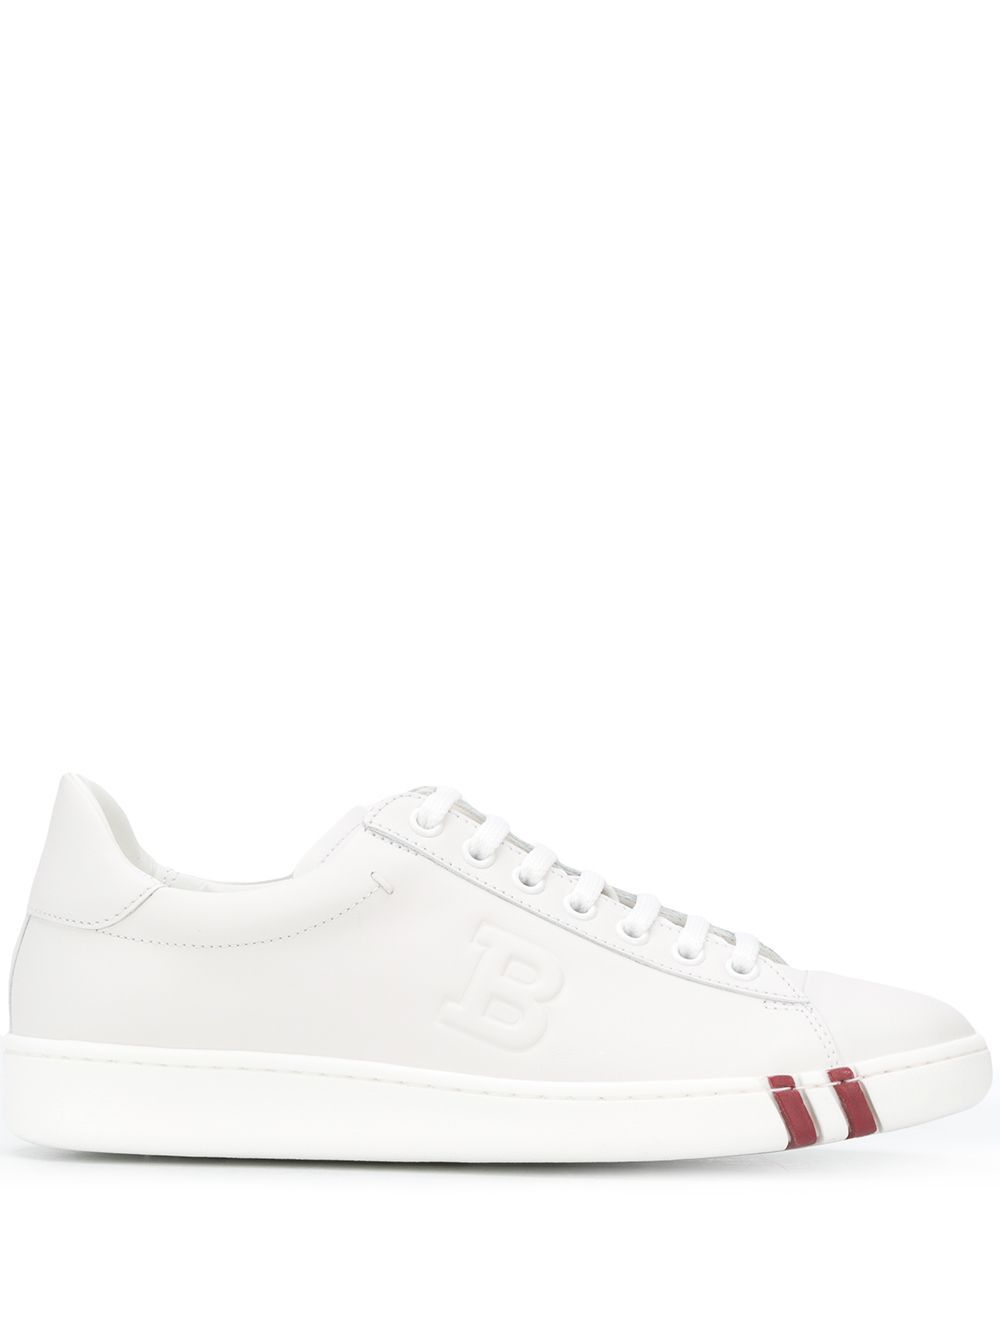 Bally WHITE LEATHER SNEAKERS